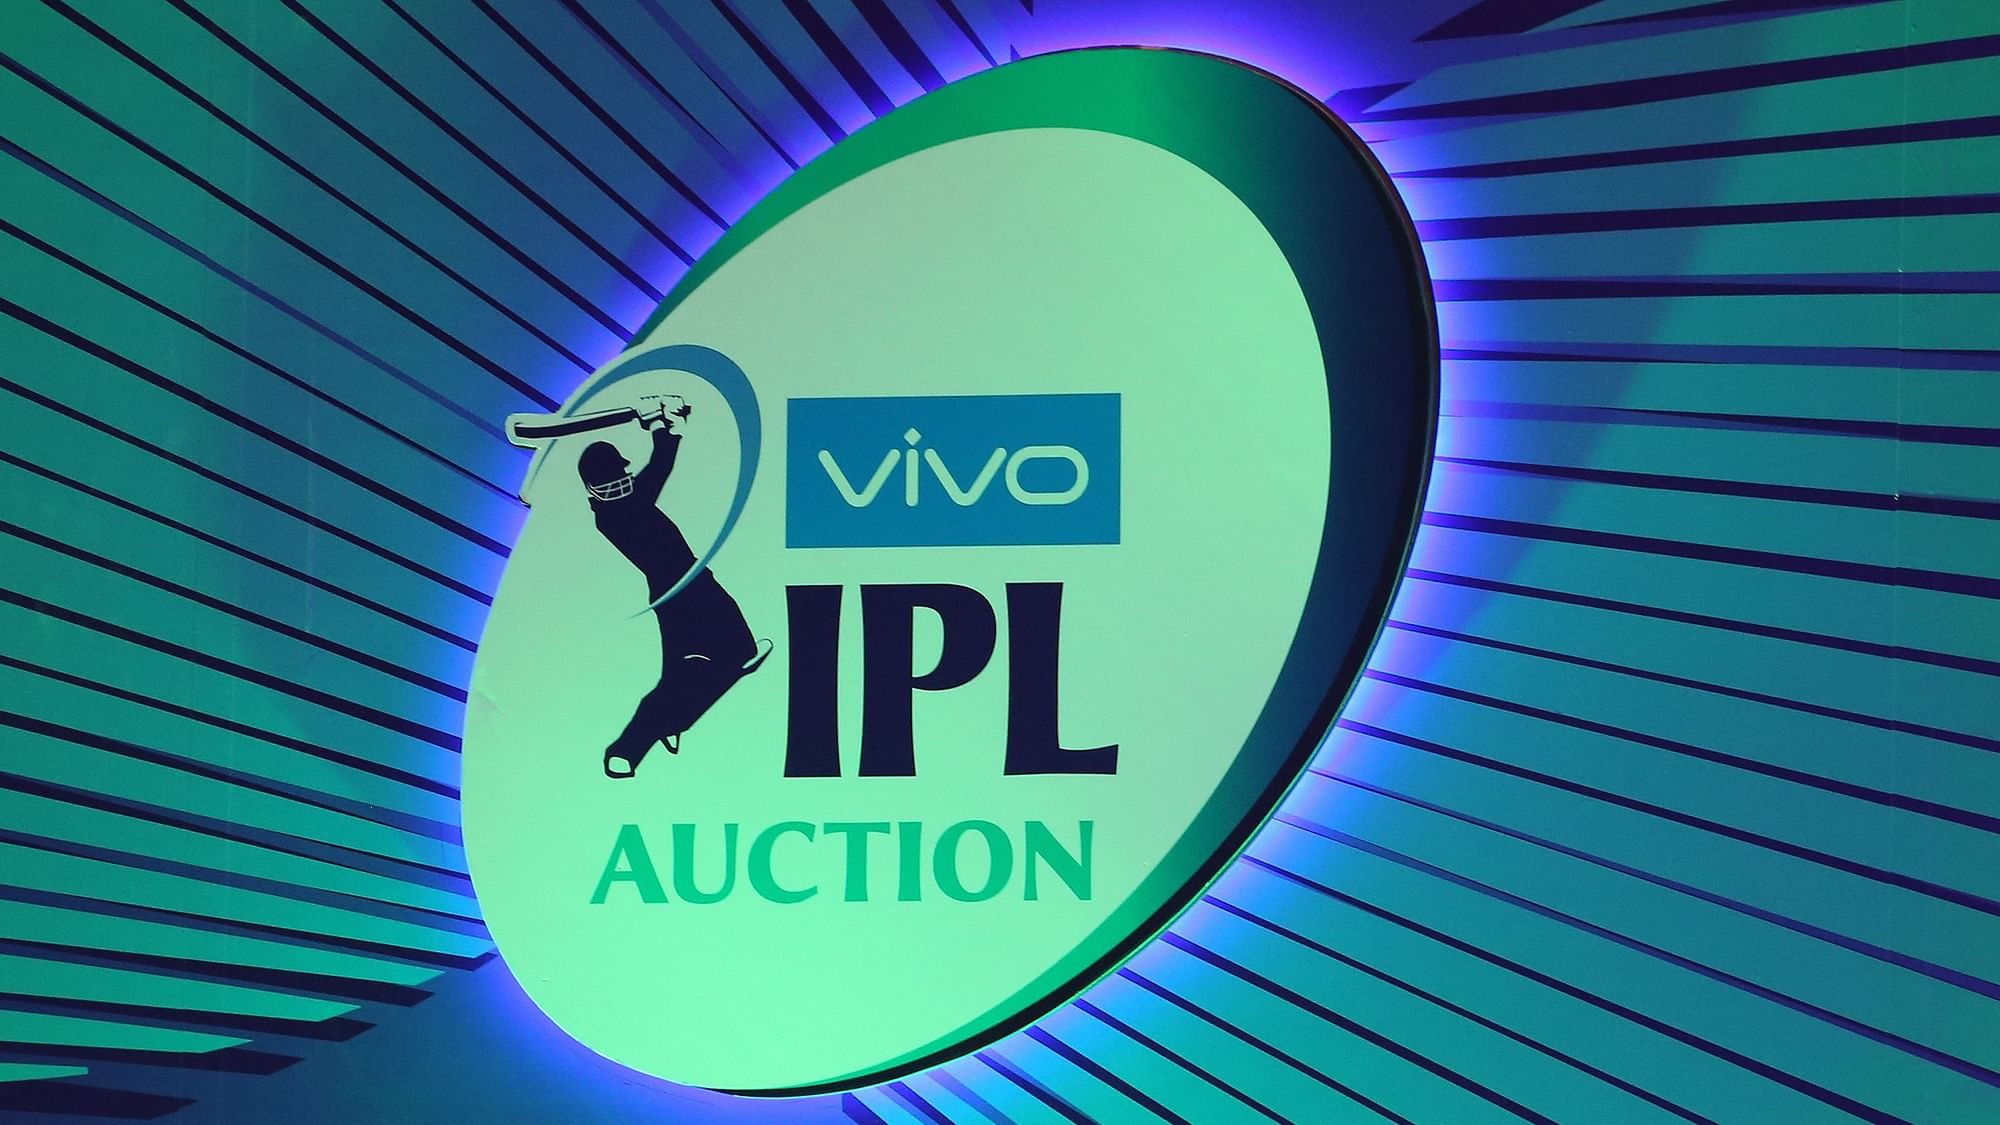 2020 IPL Auction: Full List of Players and Their Base Price